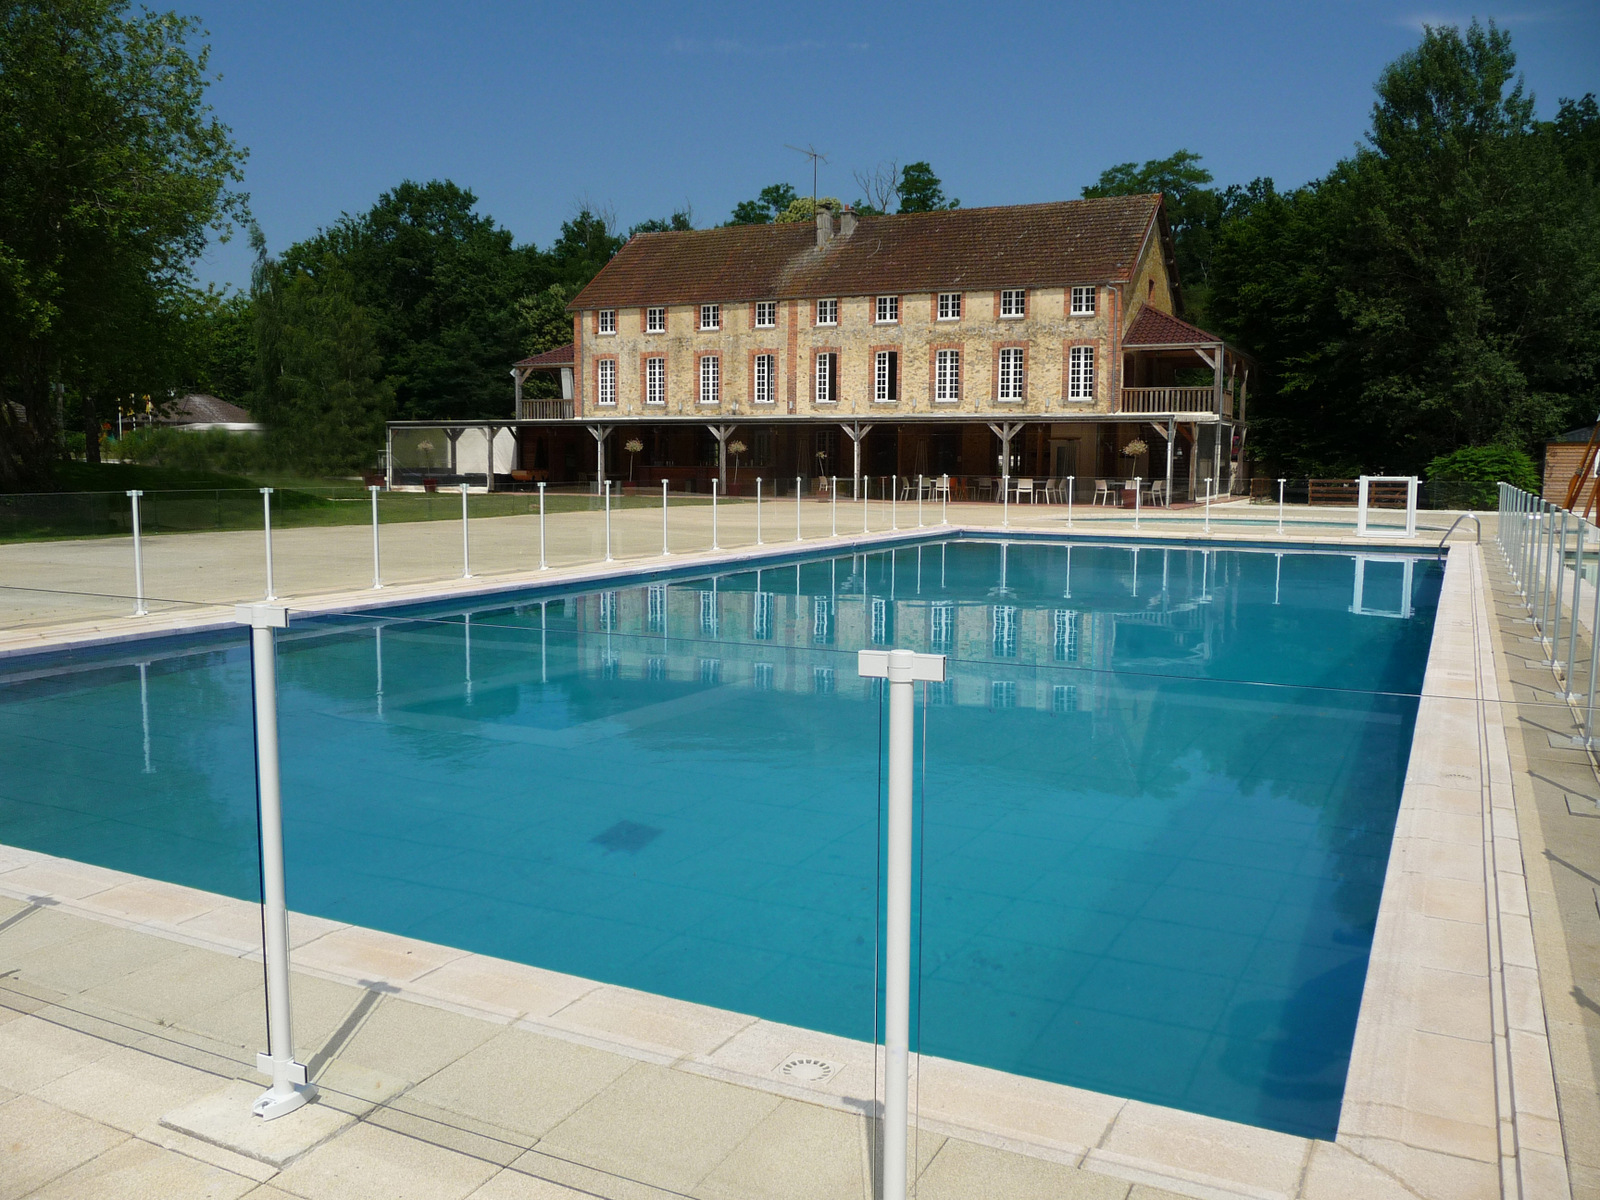 D co barriere piscine verre saint denis 27 barriere for Clotures de piscine